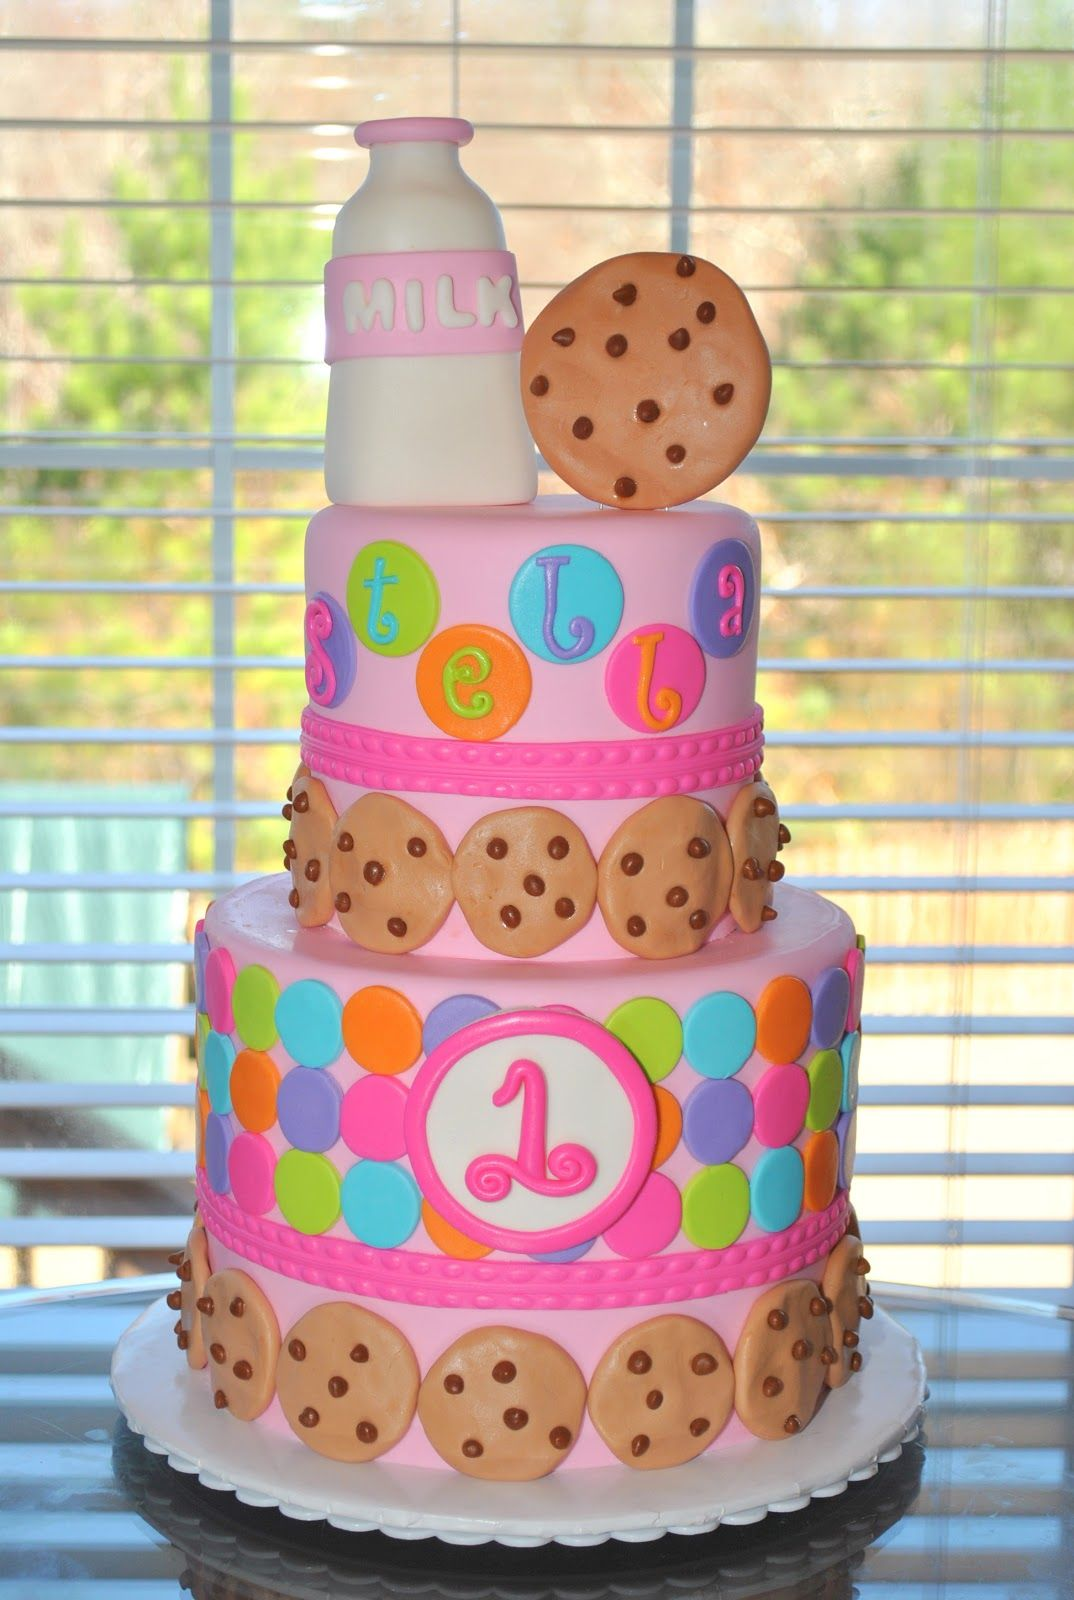 11 Year Old Birthday Cakes For Girls Awesome Birthday Cakes For 11